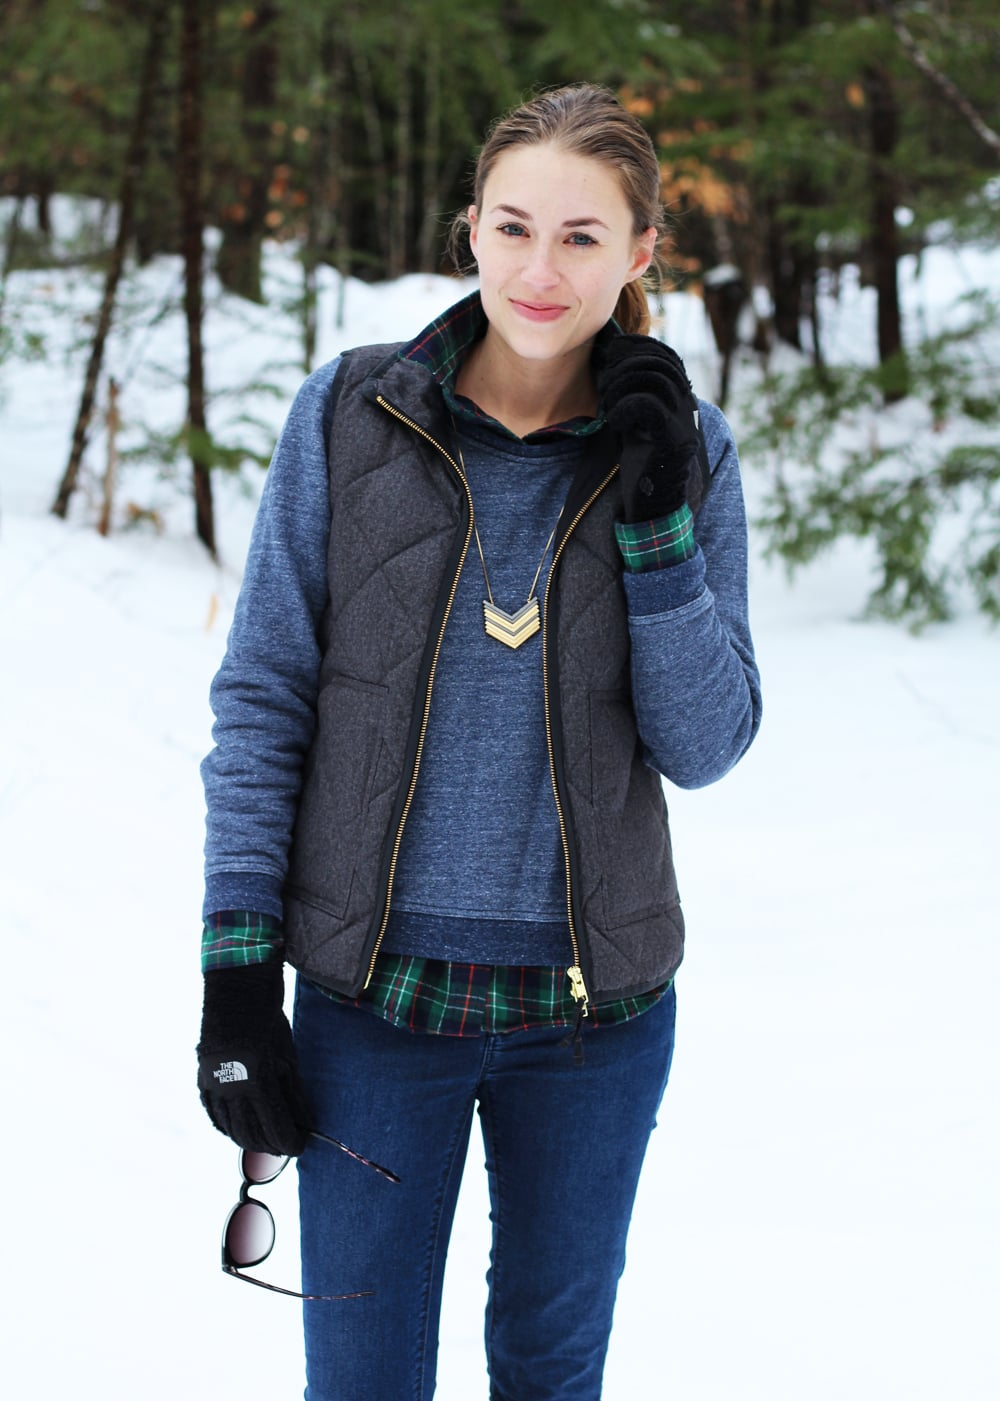 J.Crew Factory puffer vest + Everlane marled sweatshirt + L.L.Bean plaid flannel shirt + Madewell necklace — Cotton Cashmere Cat Hair